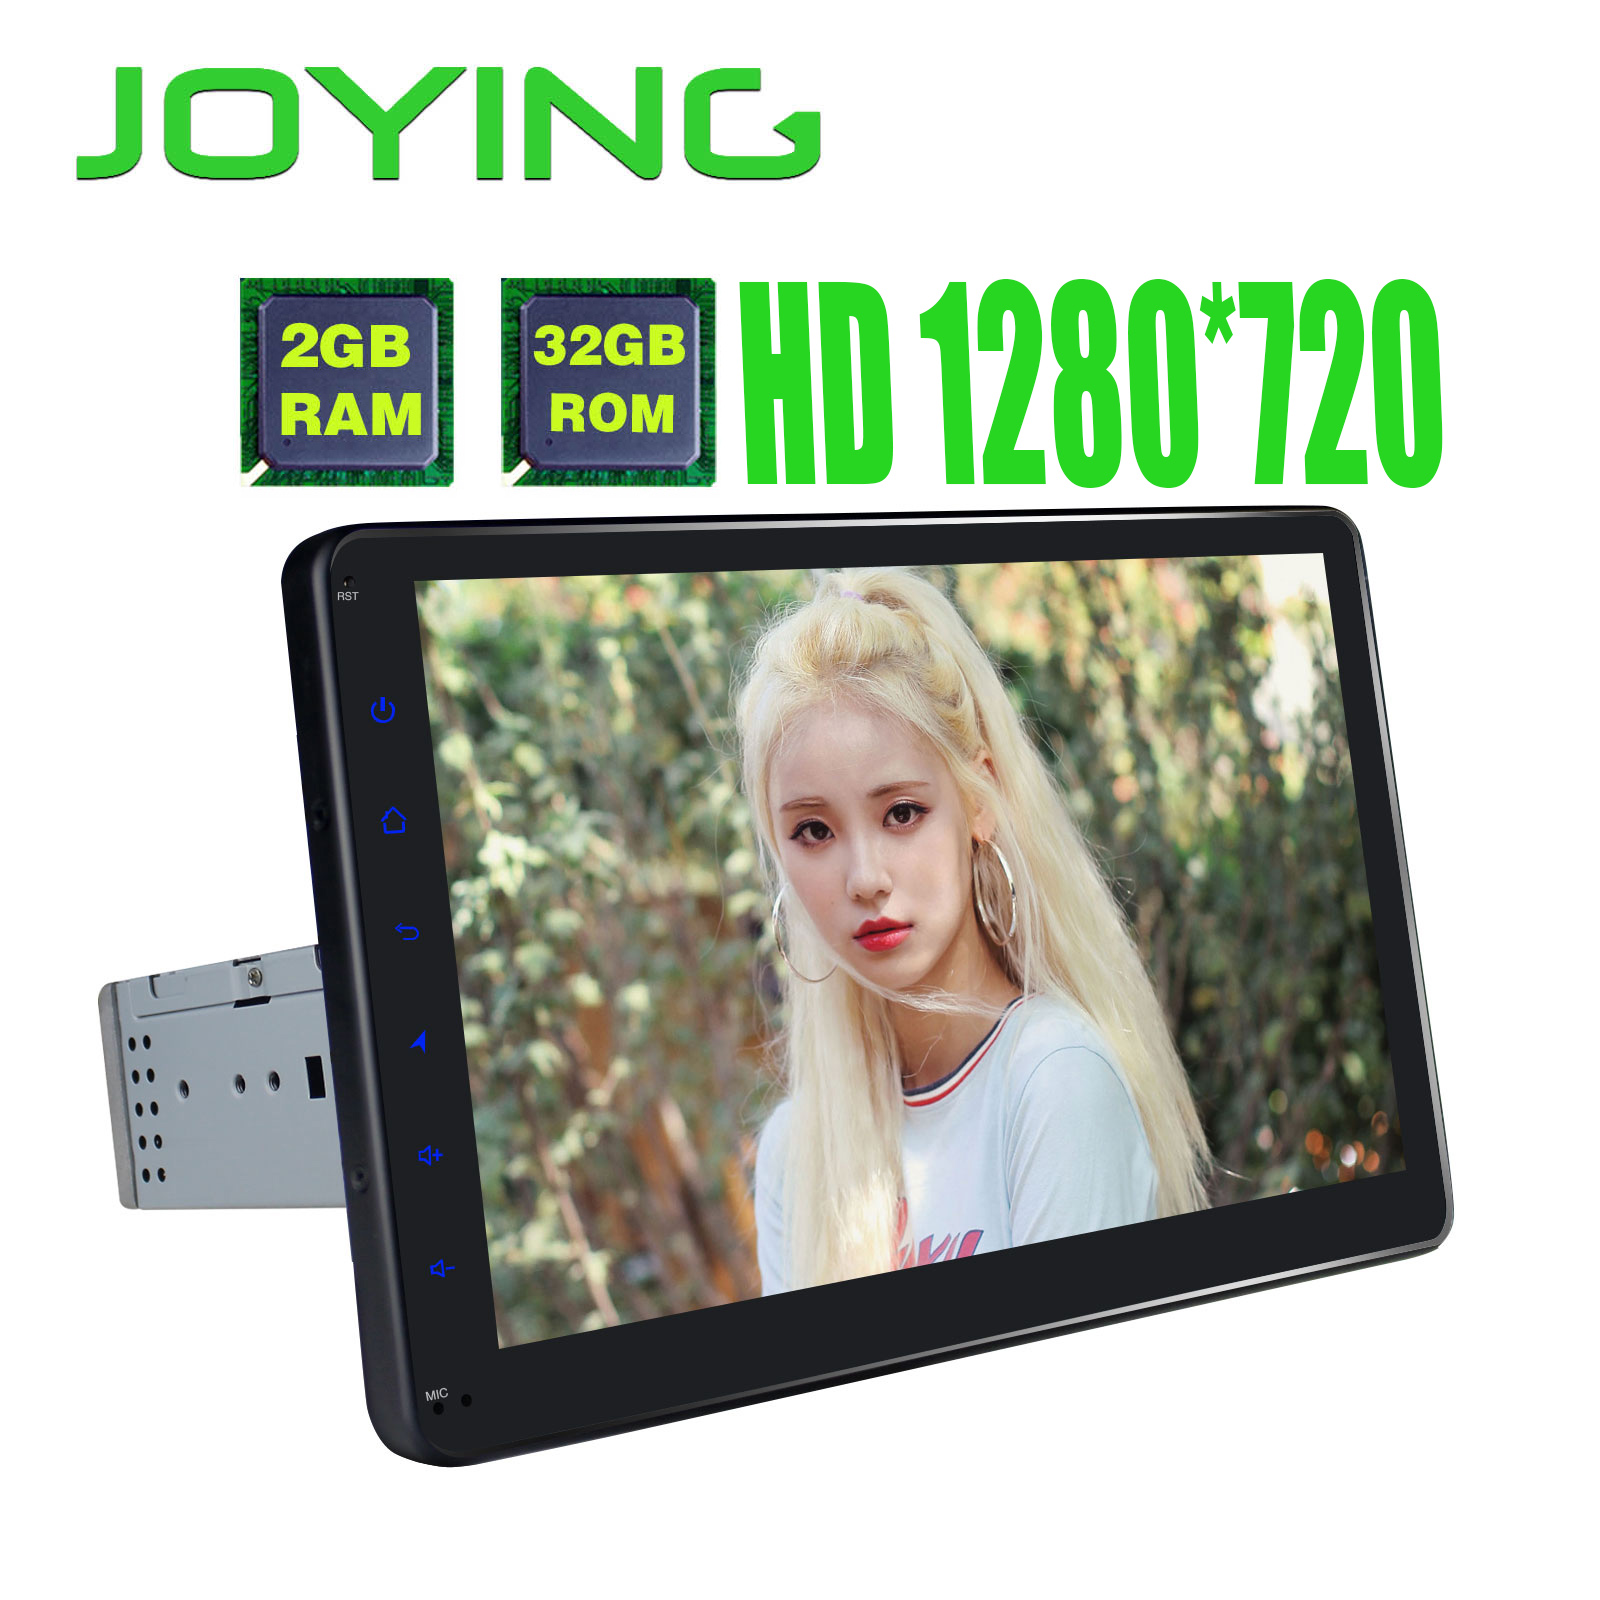 Joying new Android 5.1 Universal Single 1 DIN 8 Car Radio Stereo Quad Core Head Unit Support Dual Zone Steering Wheel Camera